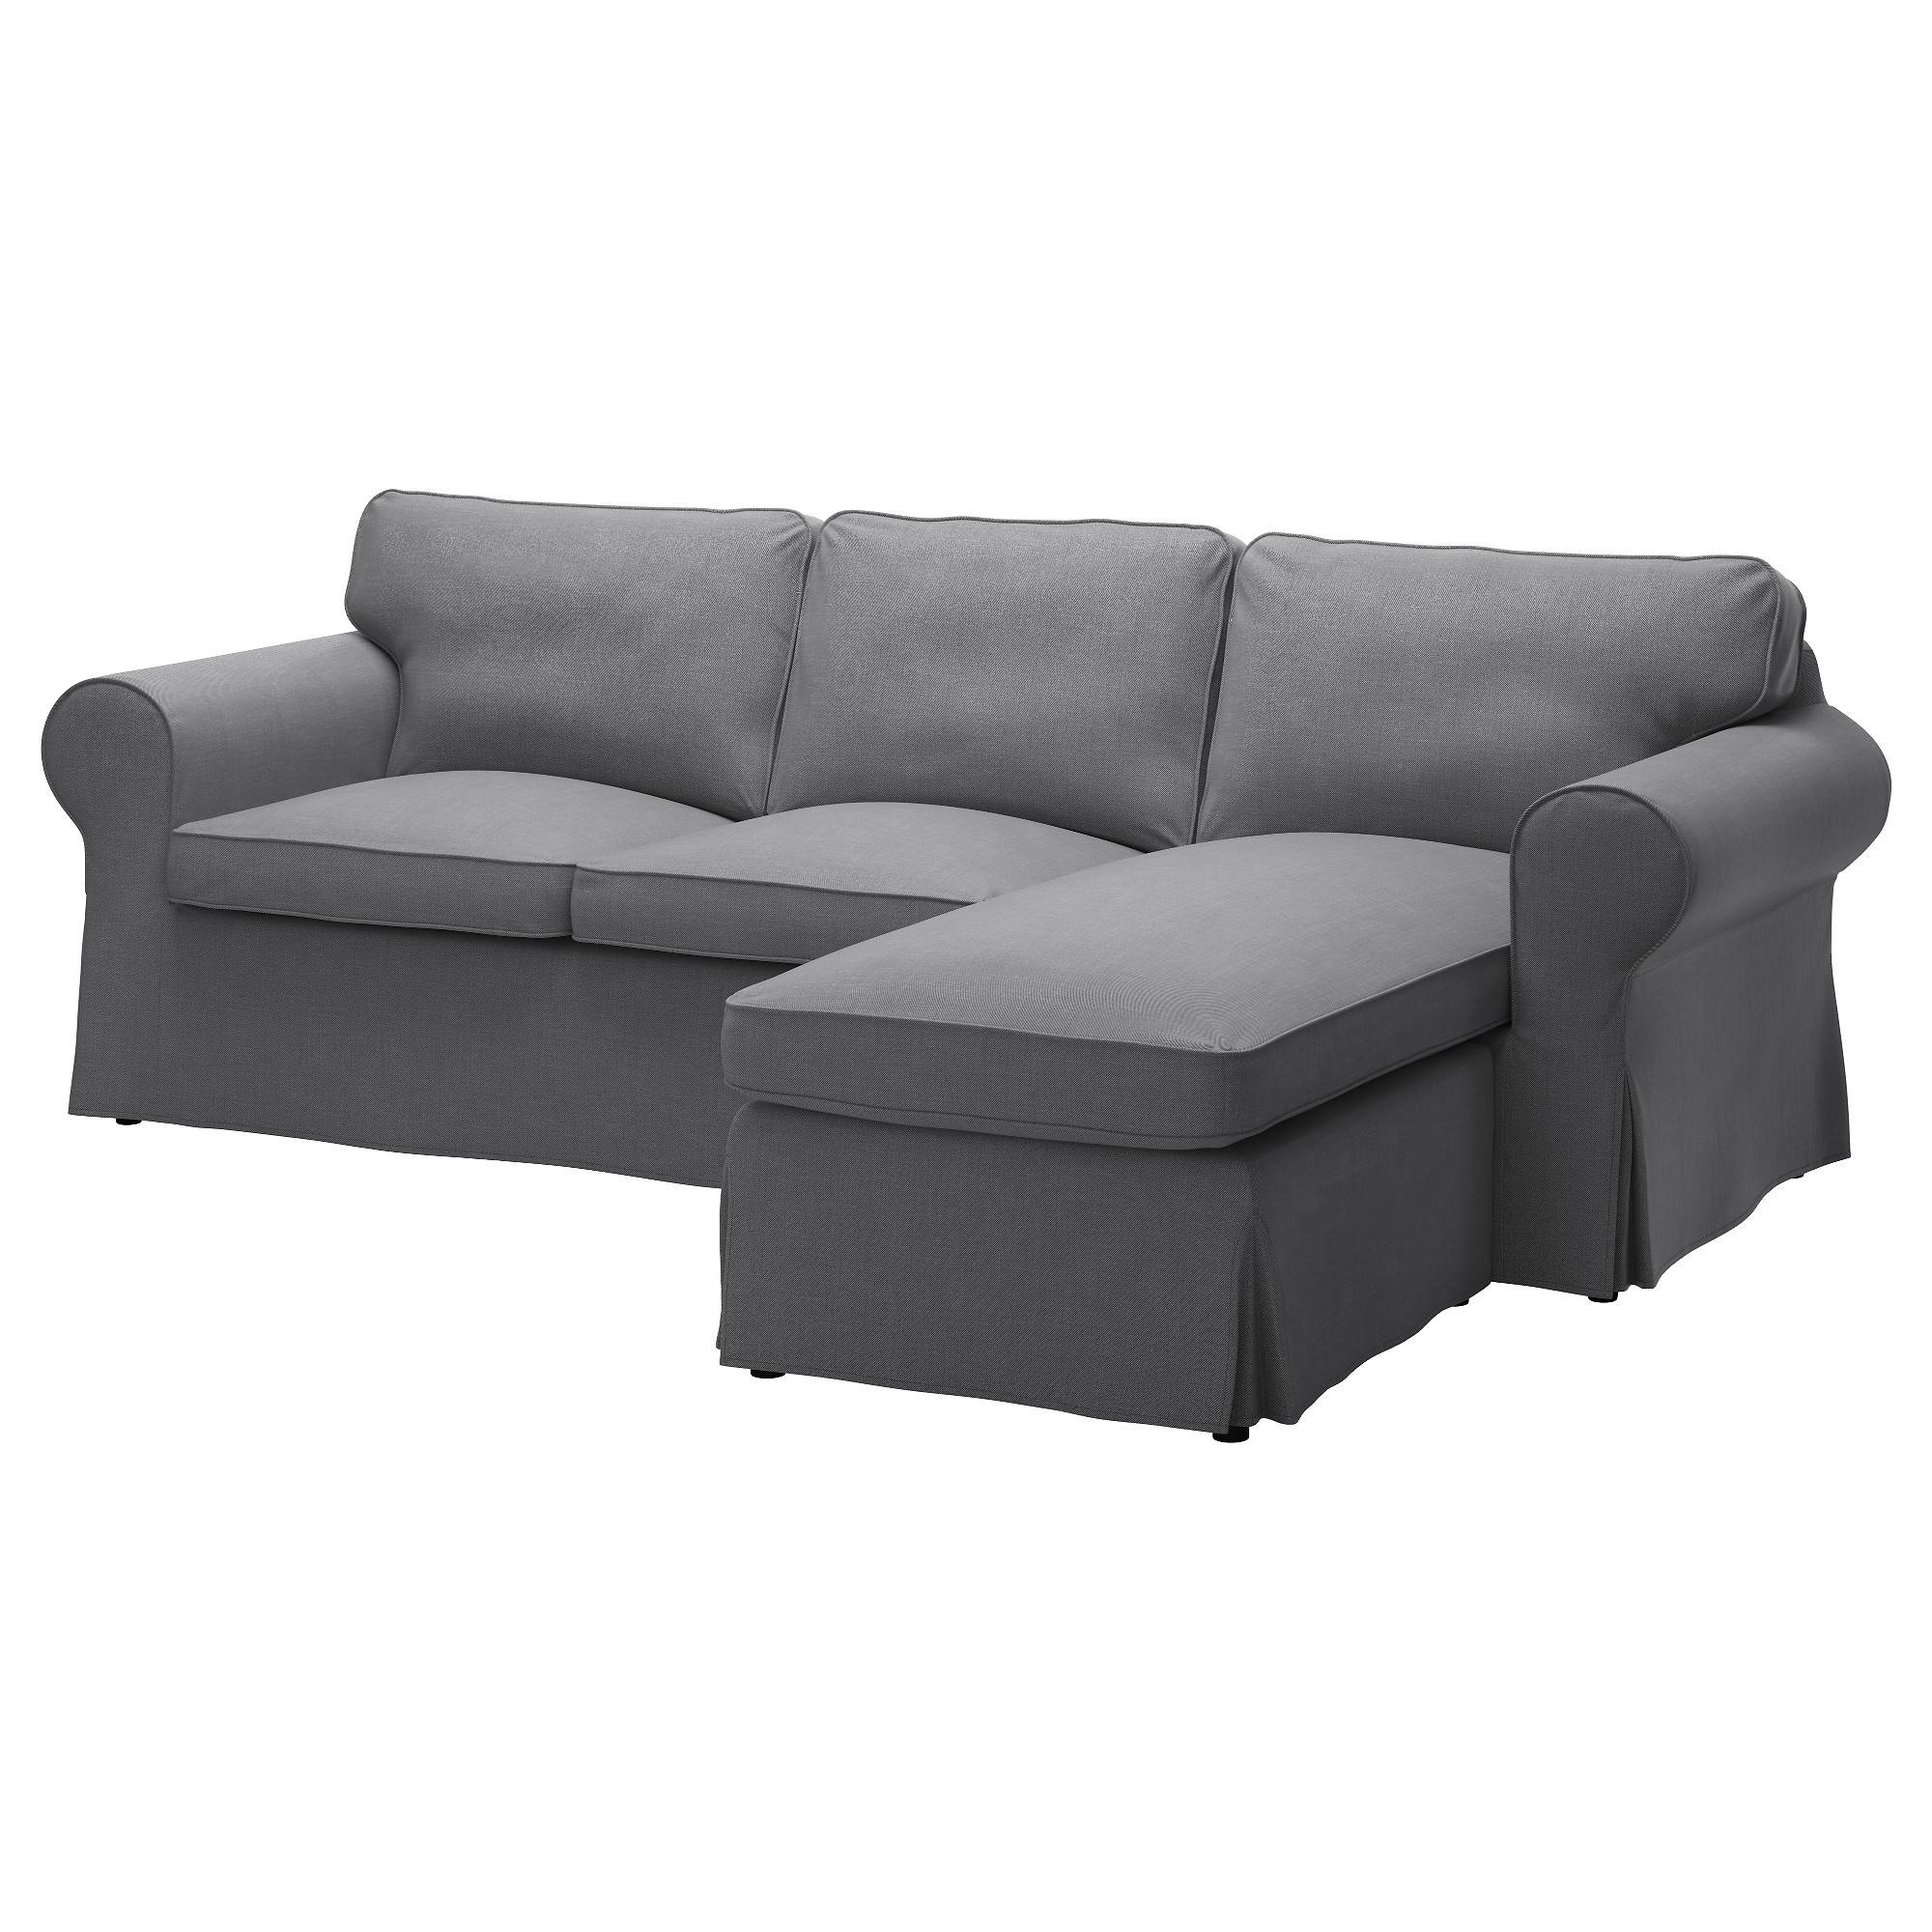 Ektorp Two-Seat Sofa And Chaise Longue Nordvalla Dark Grey - Ikea with regard to Ikea Chaise Lounge Sofa (Image 10 of 30)